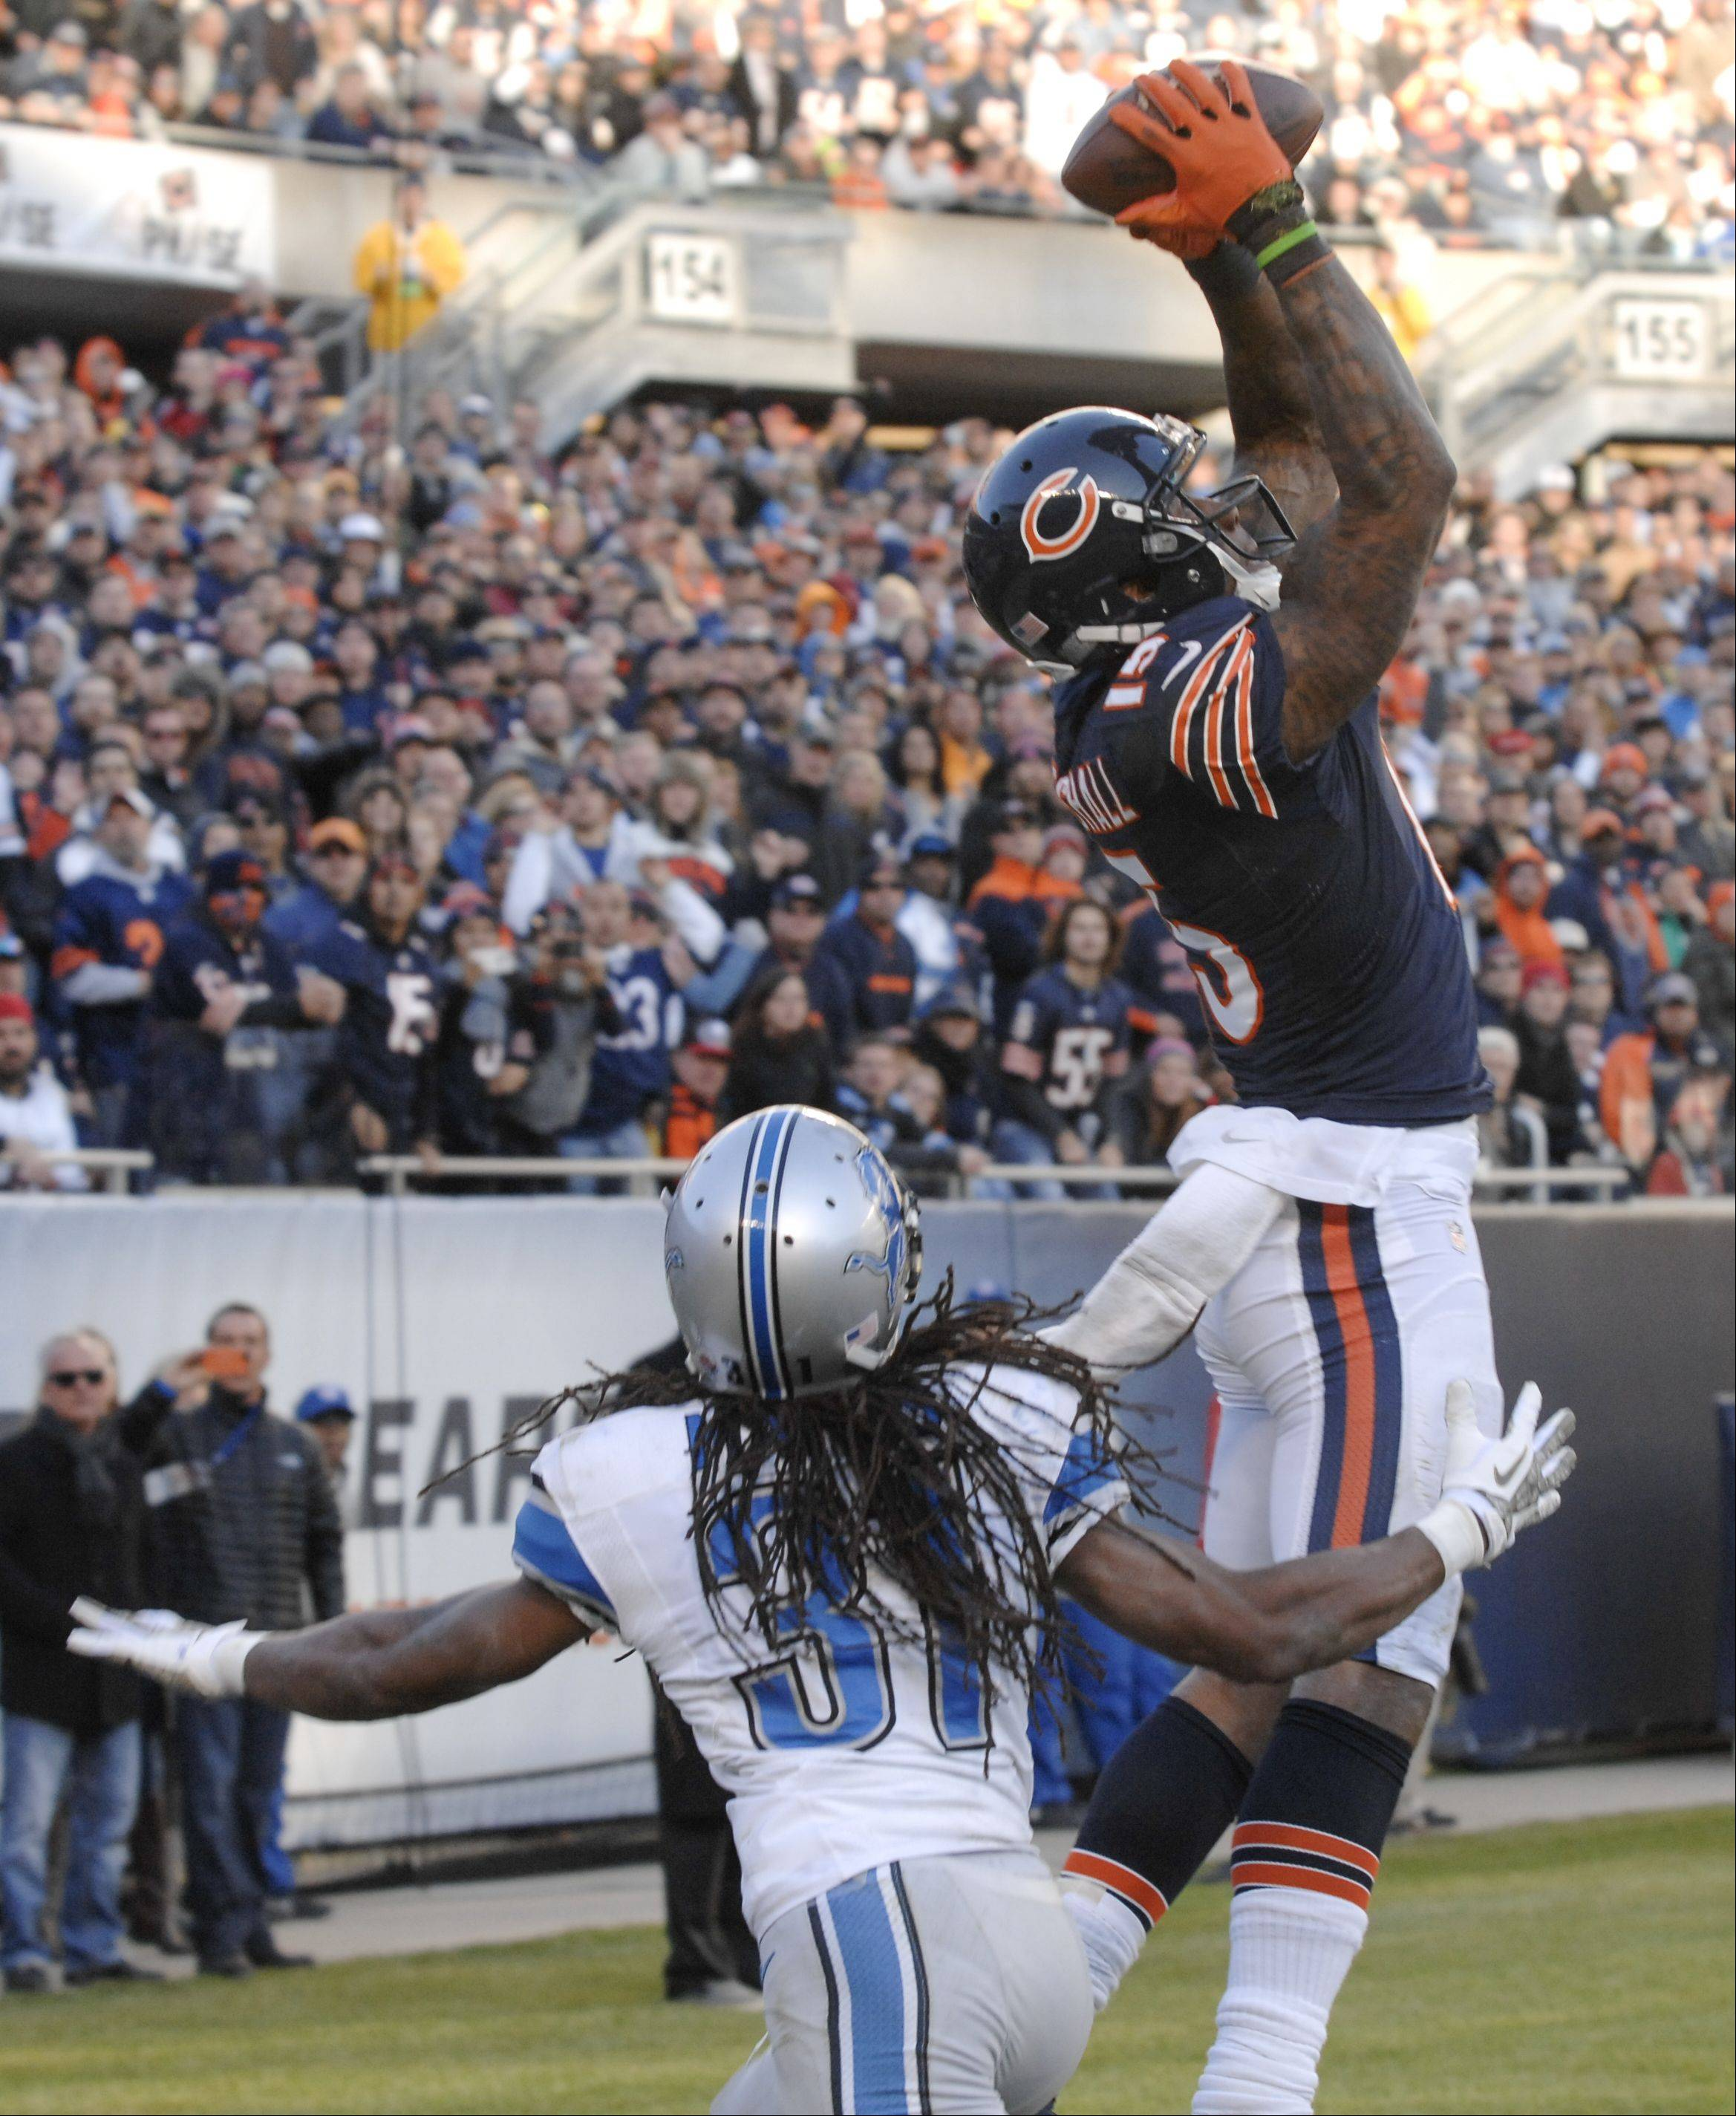 Bears wide receiver Brandon Marshall has posted his seventh 1,000-yard season of his eight in the league and has already tied his career best with 11 touchdown catches, sixth in the league. He's tied for fifth in the NFL with 94 catches.